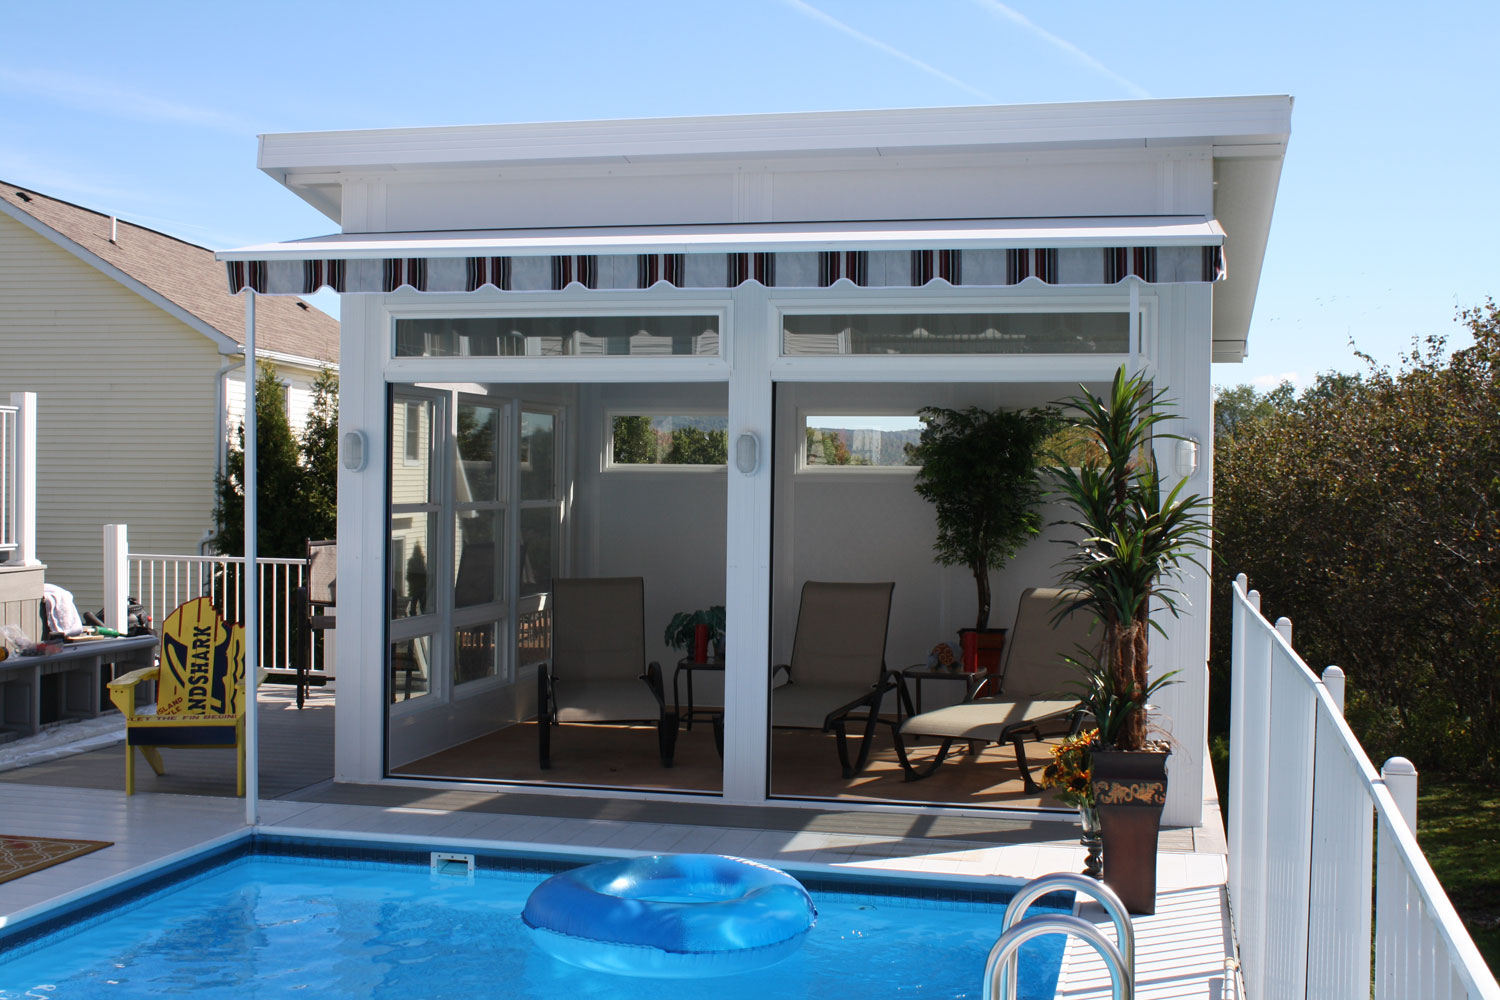 Three season cabana deluxe screen cabana pool house cabana for Pool houses and cabanas